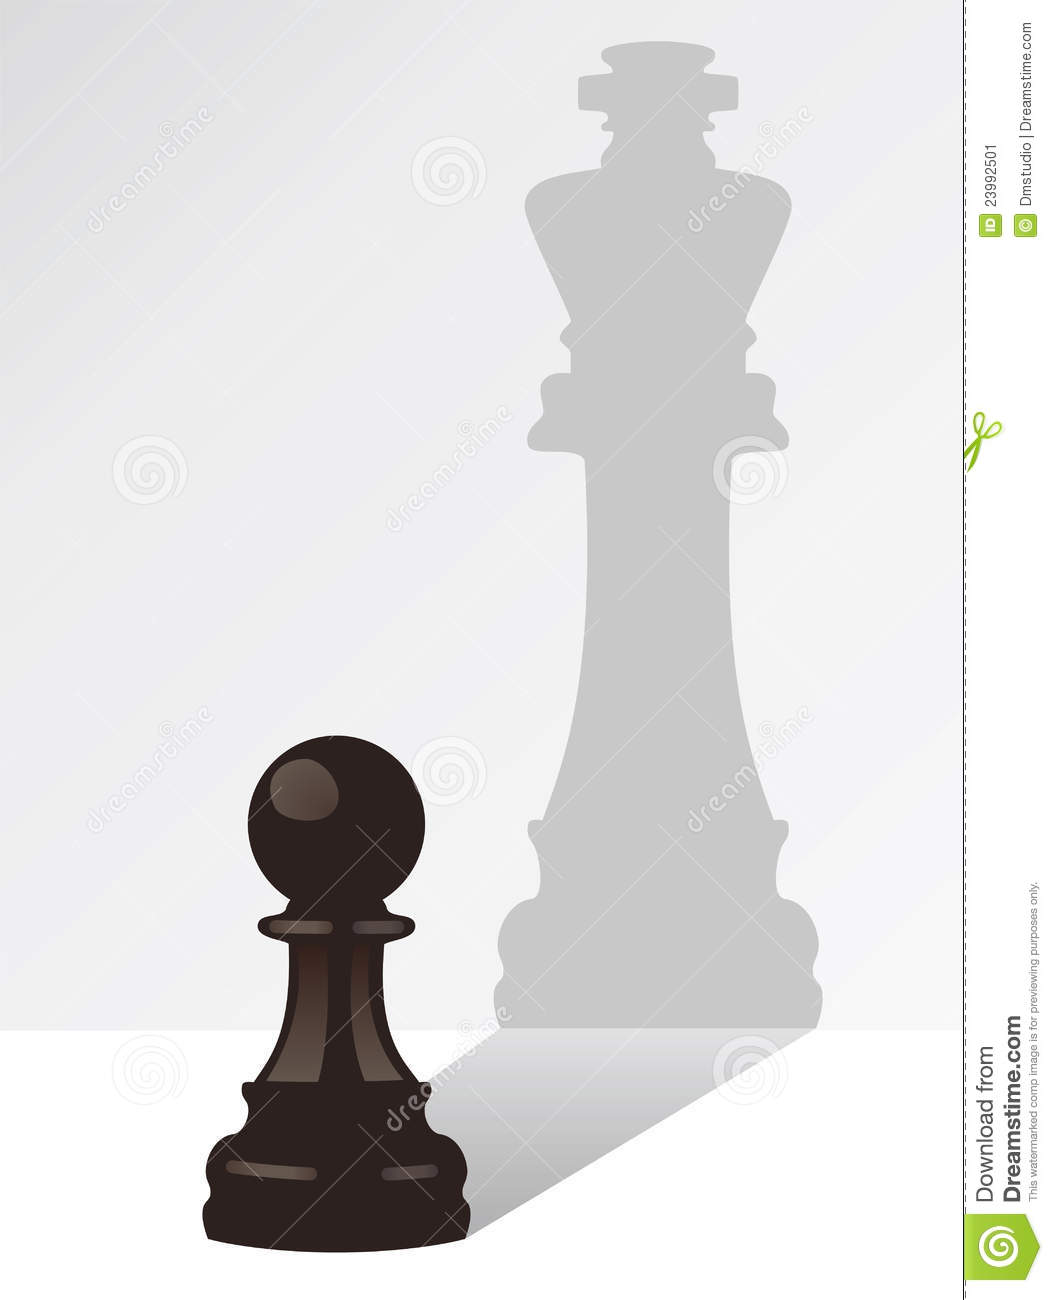 Vector Chess Pawn With The Shadow Of A King Stock Vector ...